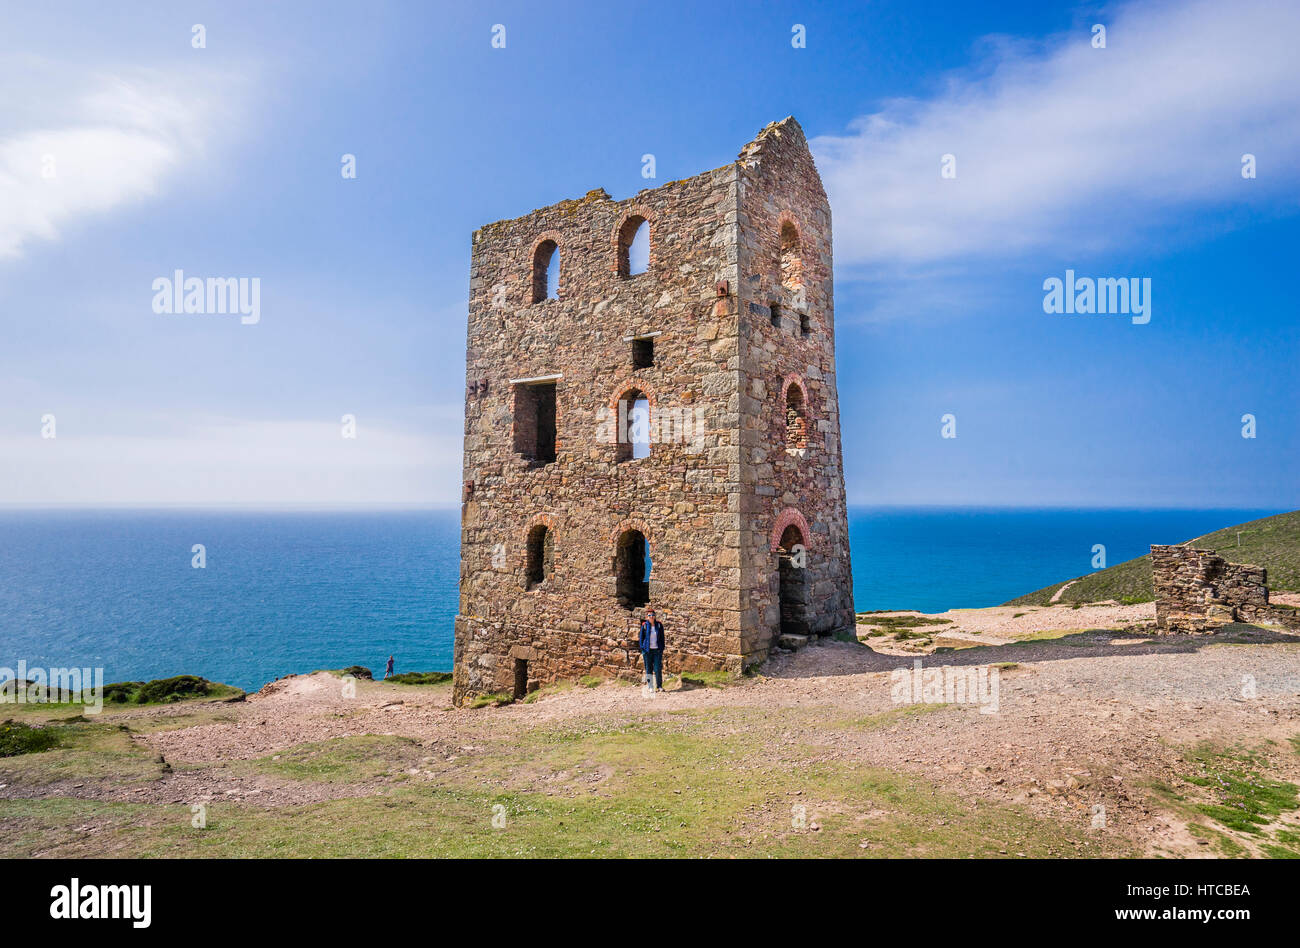 United Kingdom, South West England, Cornwall, St. Agnes Heritage Coast, the historic Cornish mining site of Wheal - Stock Image